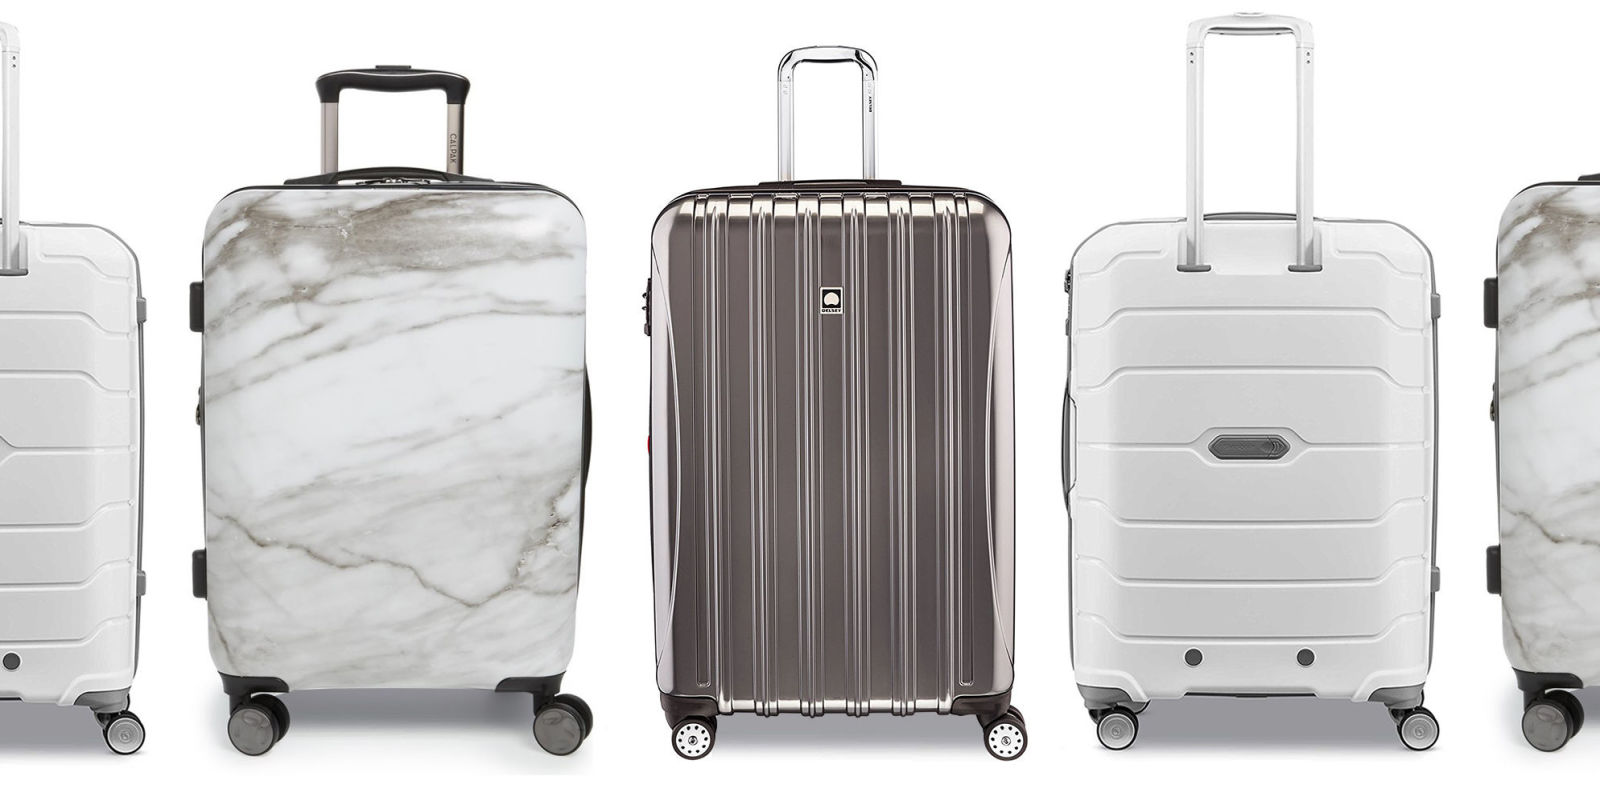 10 Best Cheap Suitcases for 2017 - Chic and Cheap Luggage for ...